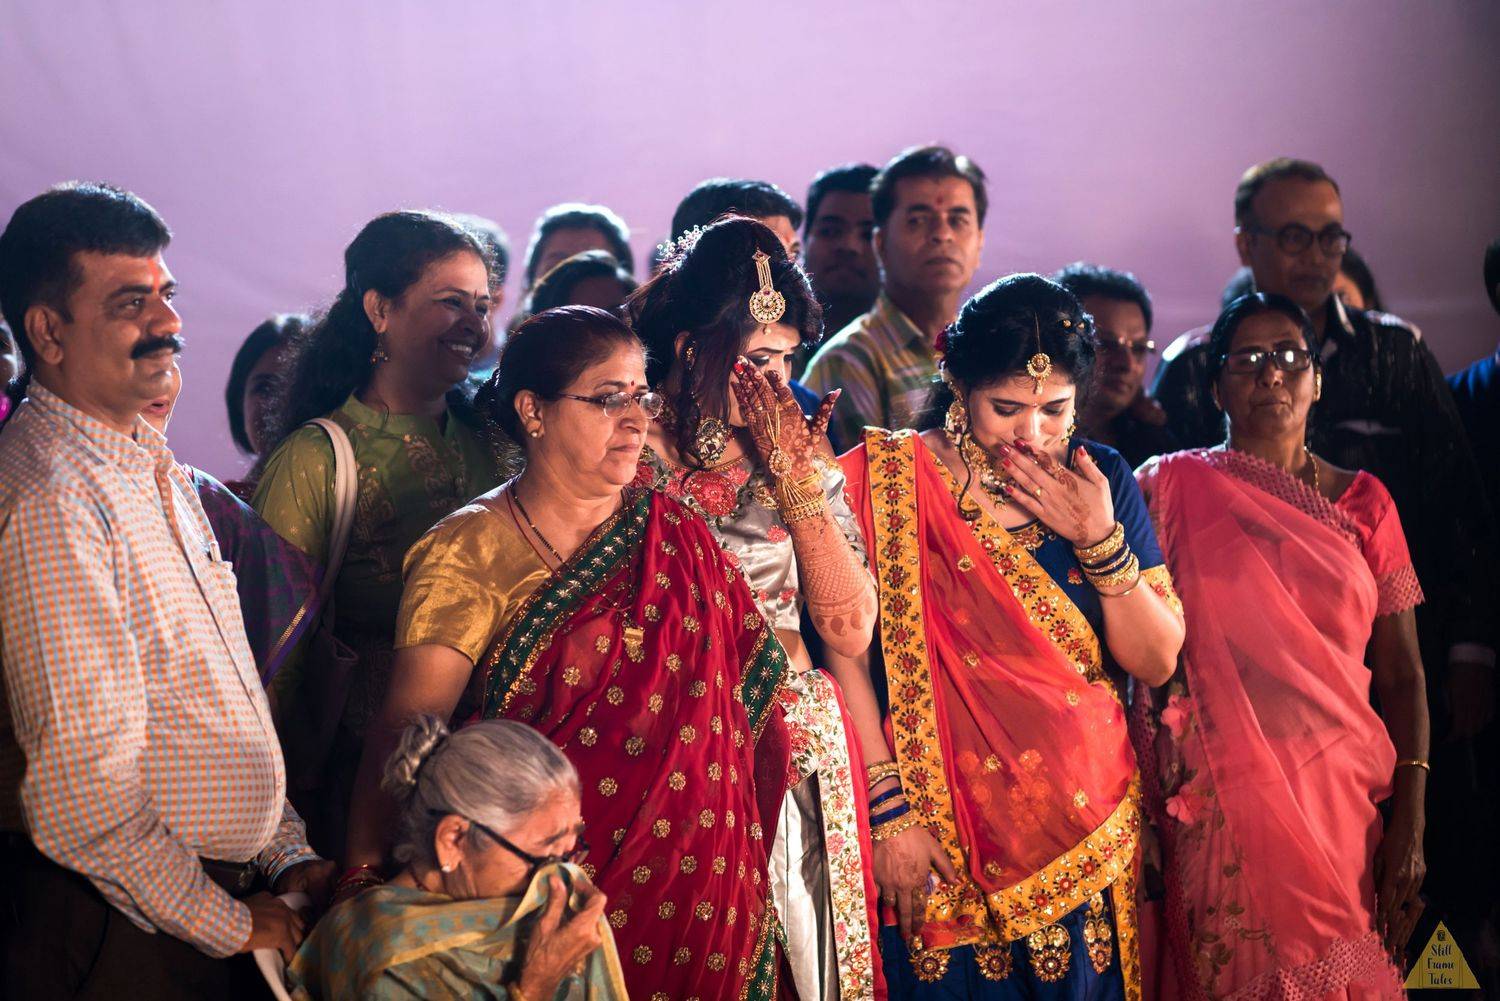 Bride & relatives emotionally involves in a sangeet sandhya moment